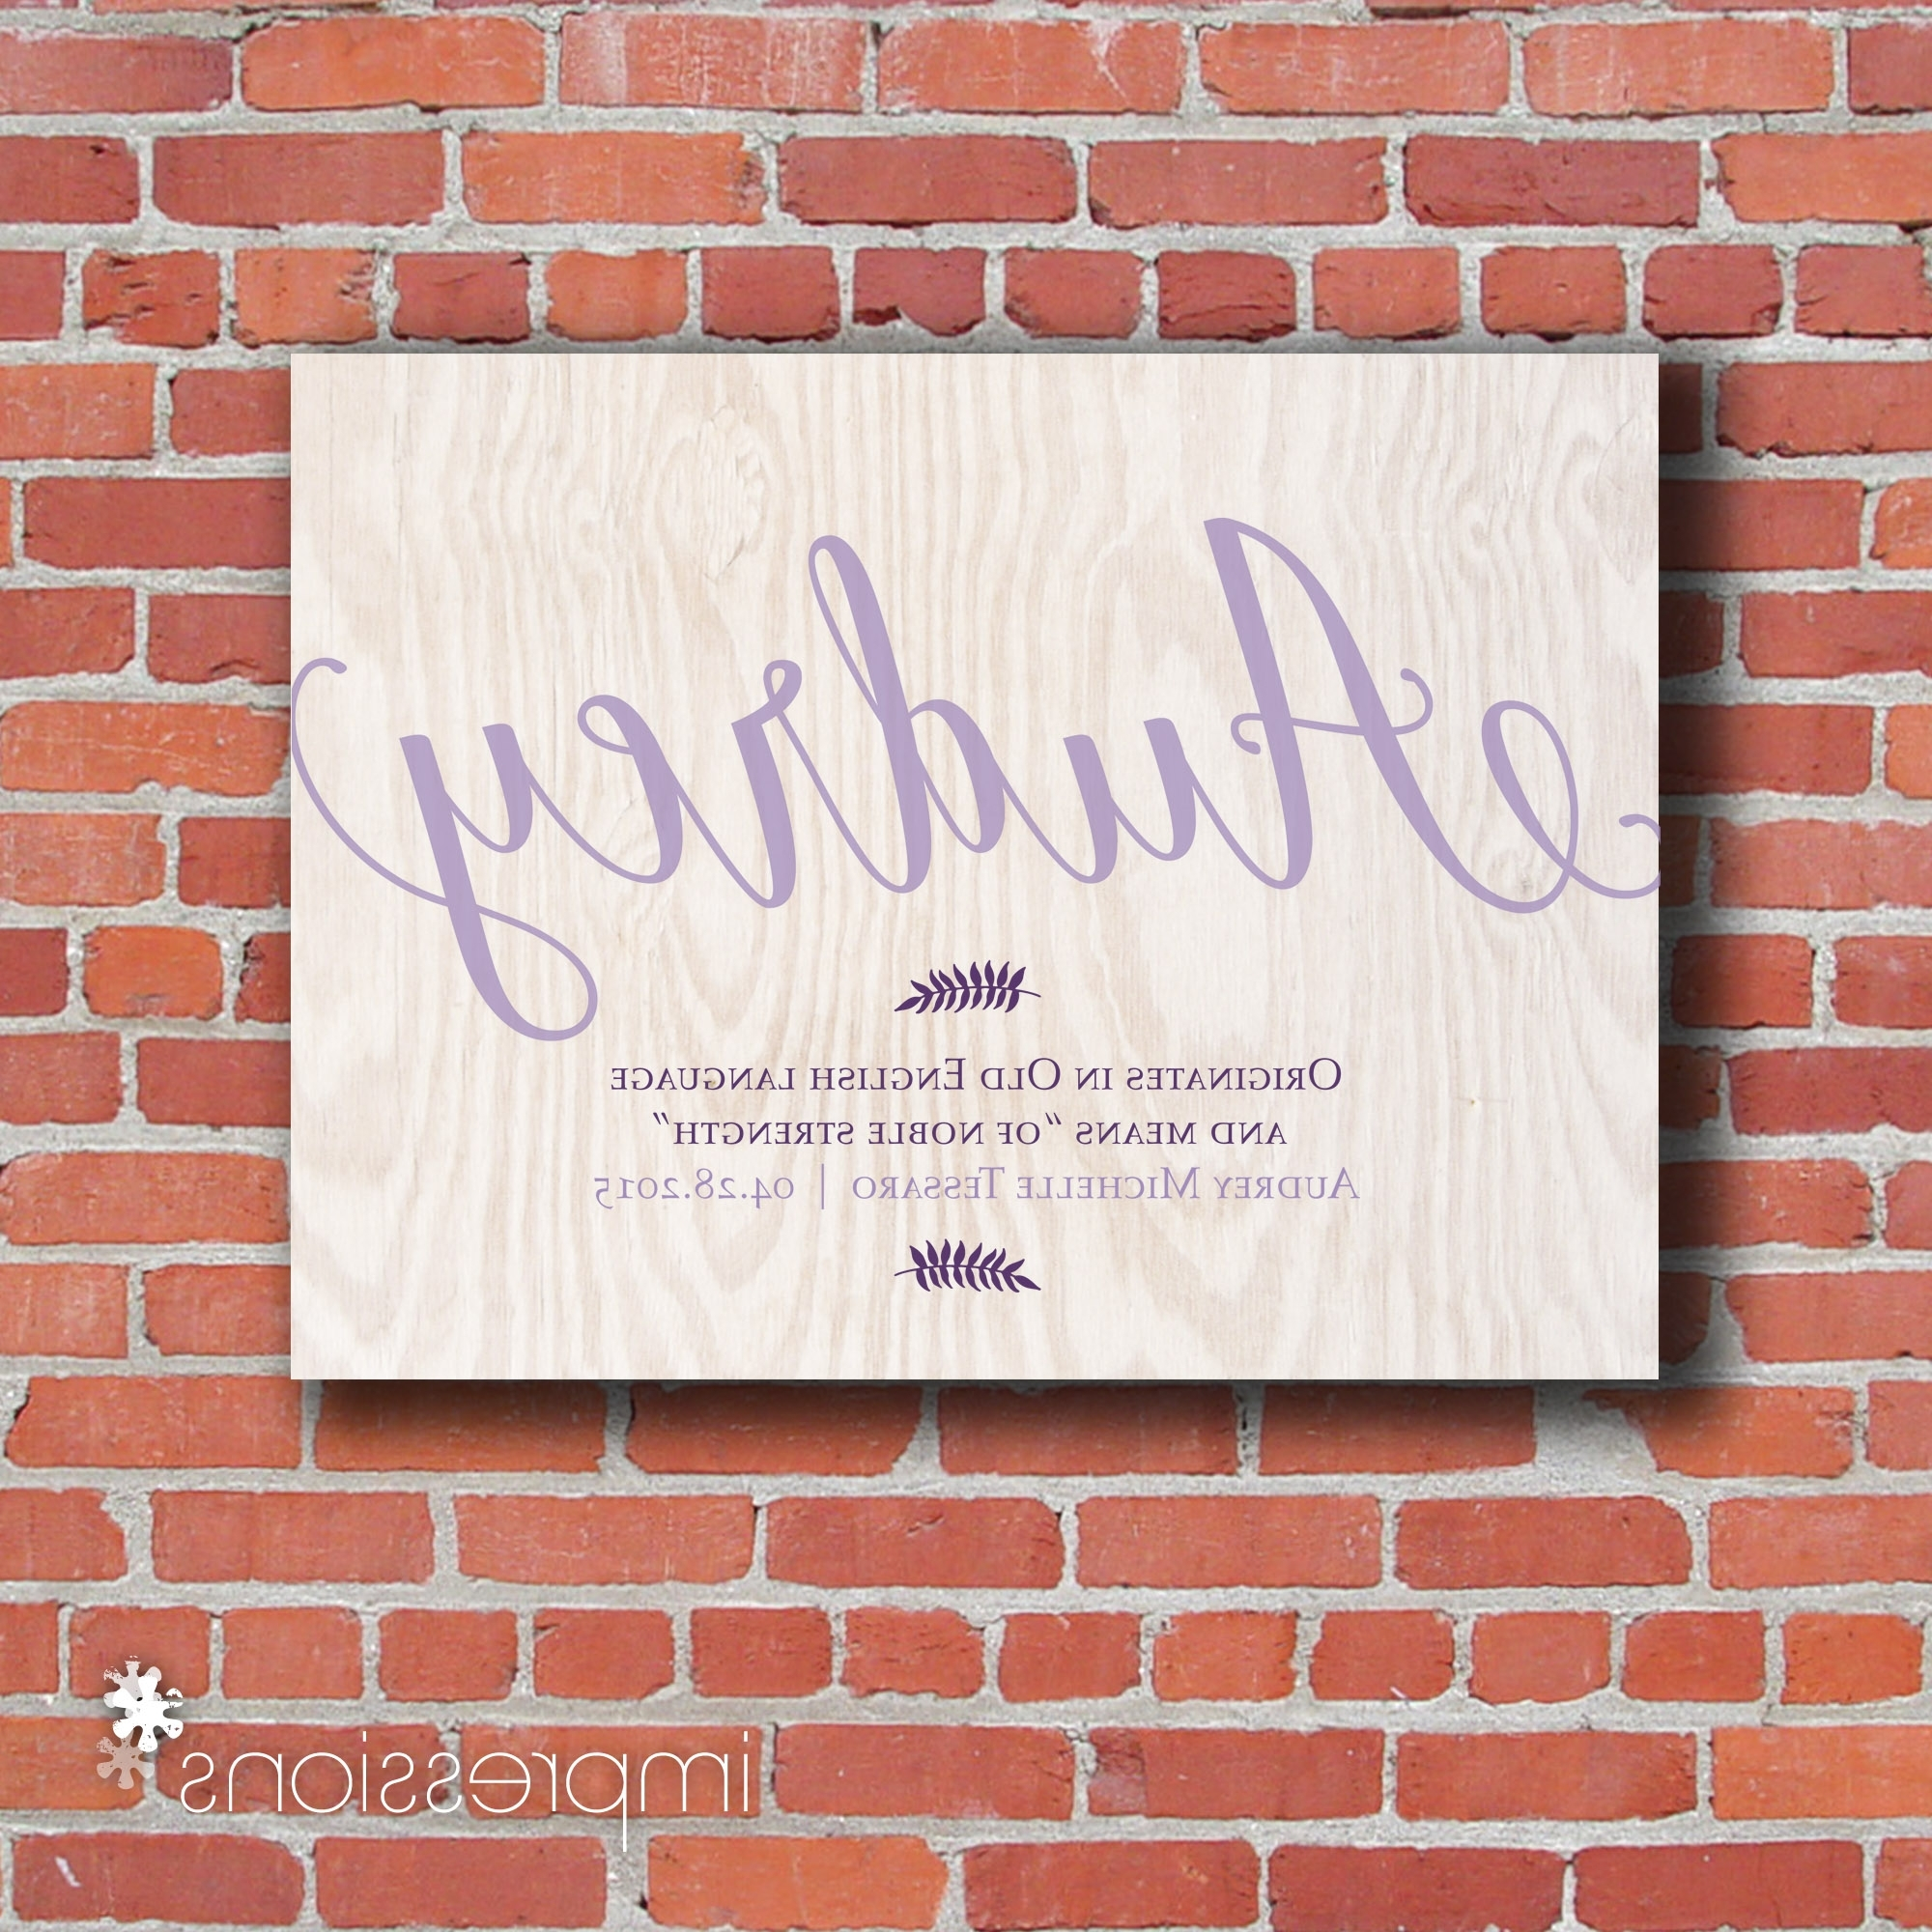 Baby Name Wall Art Inside Current Personalized Baby Name Wall Decor • Walls Decor (View 11 of 15)